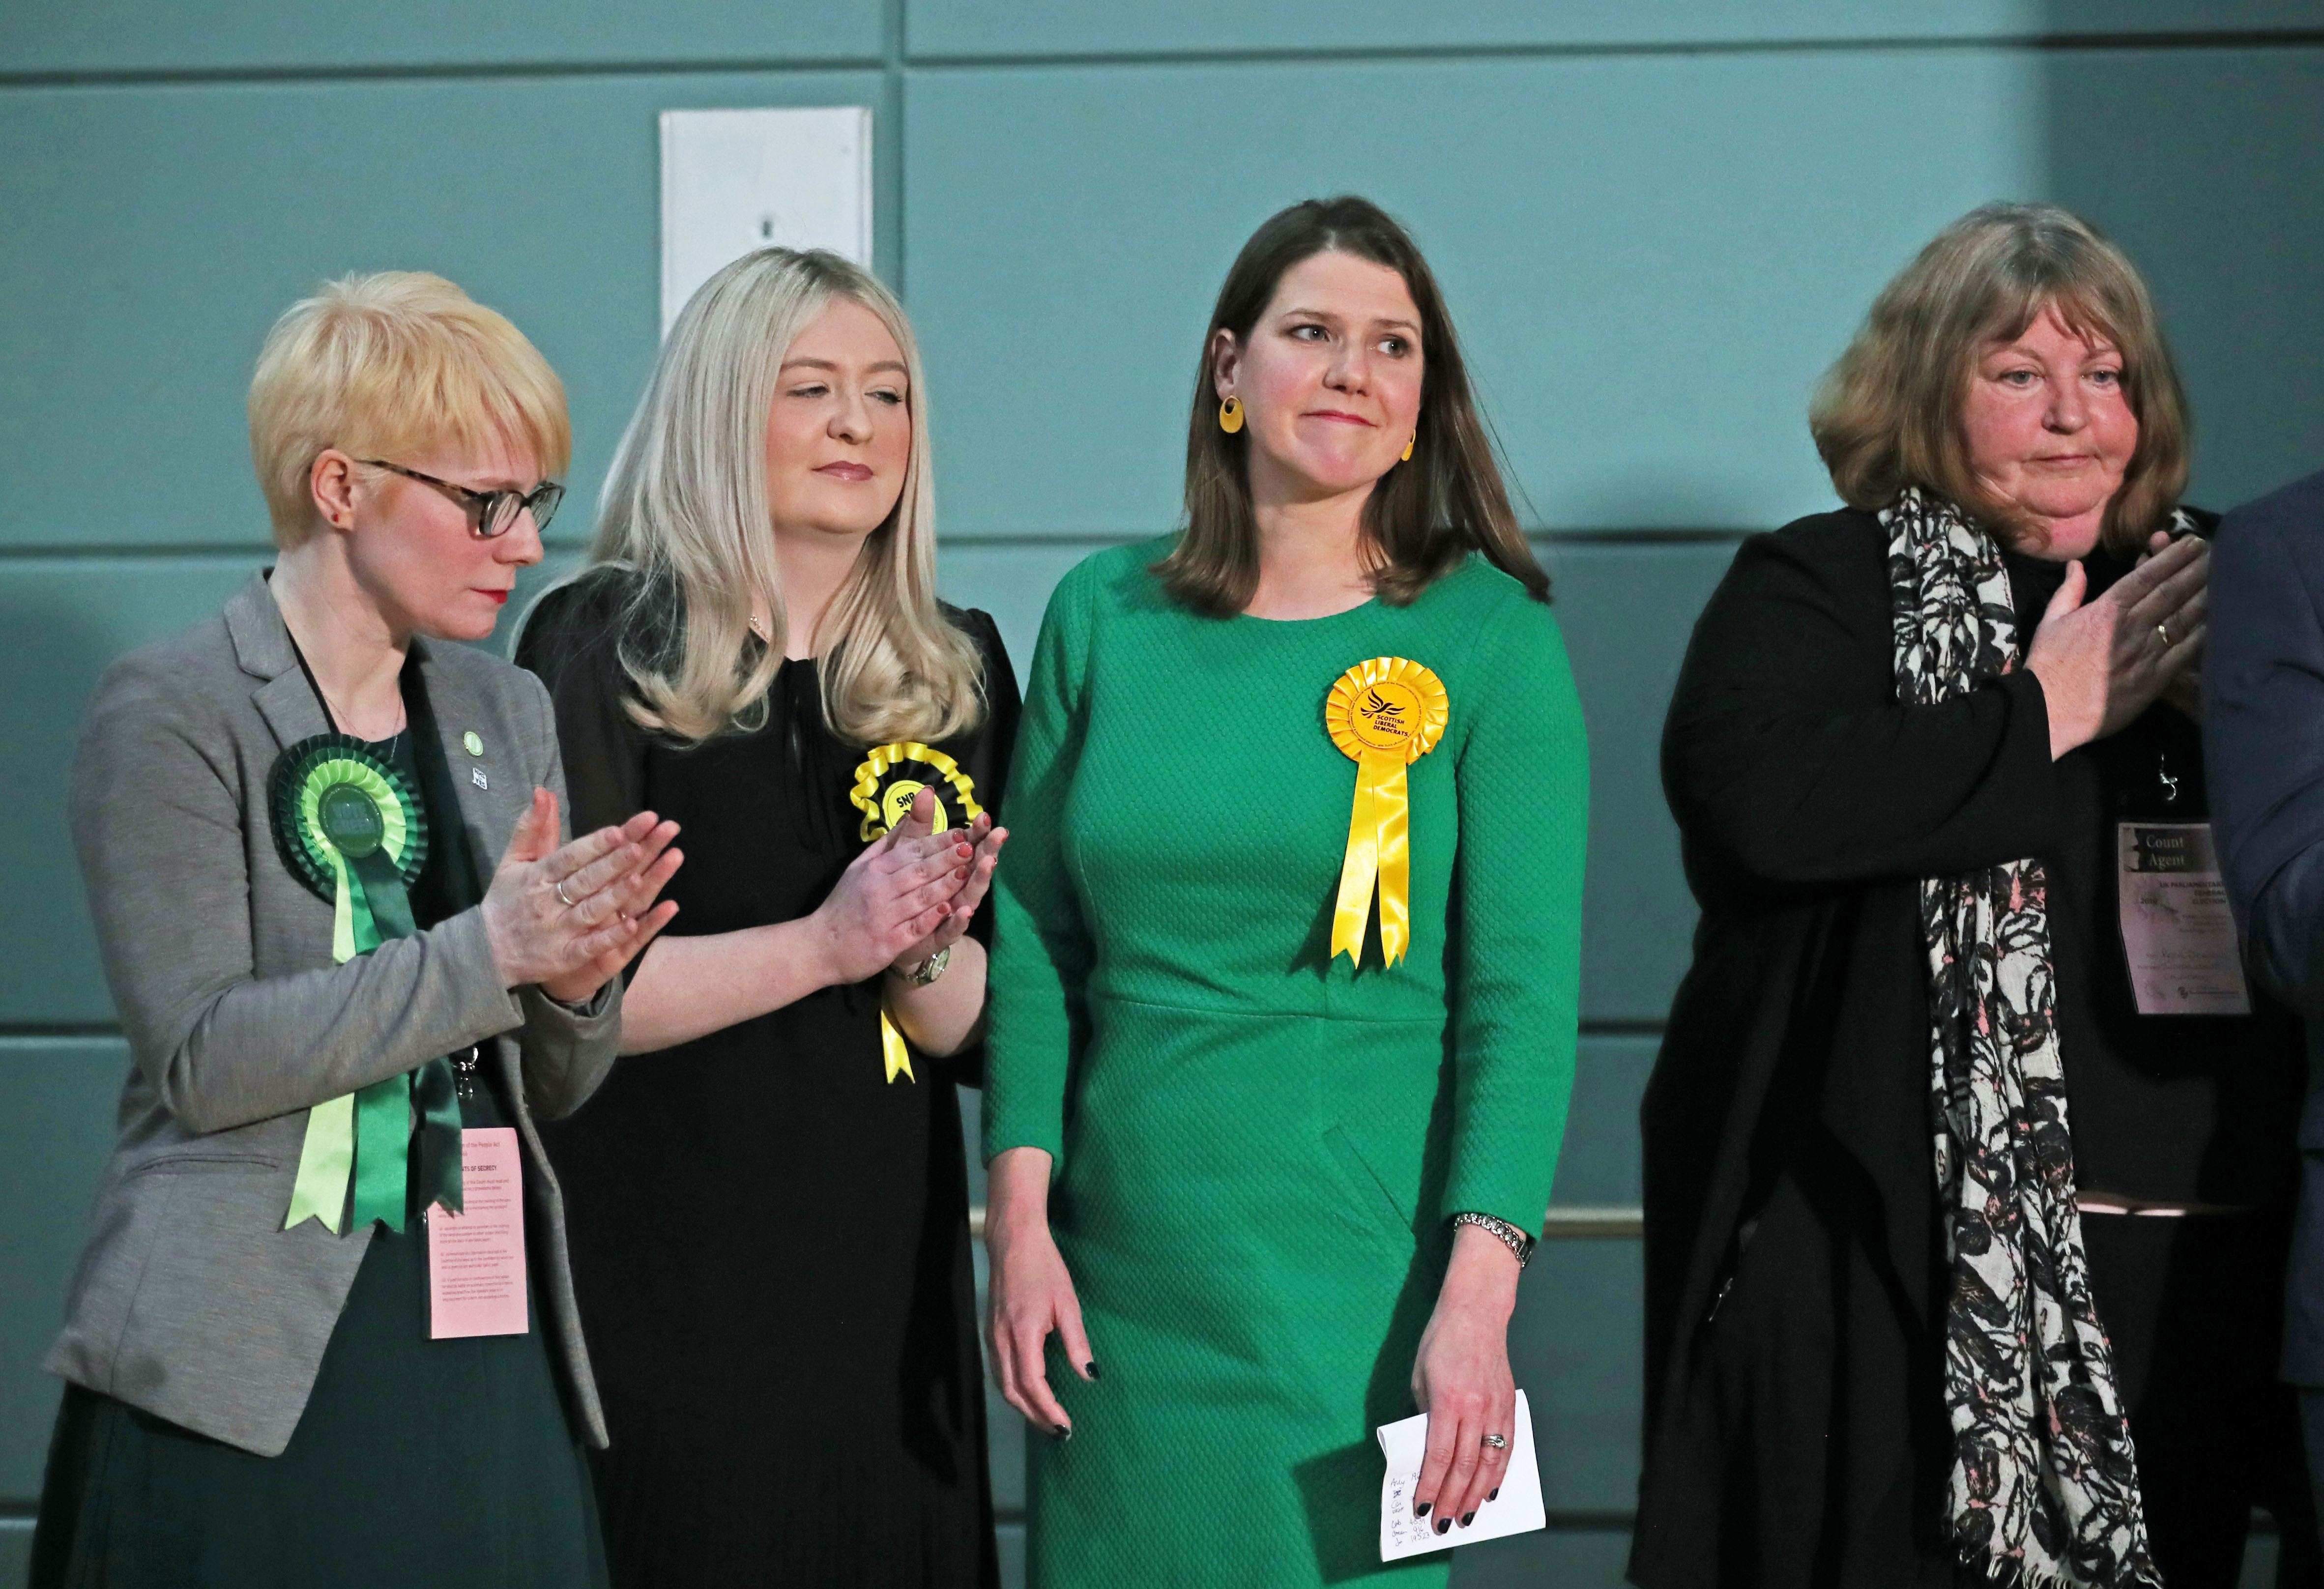 Lib Dem leader Jo Swinson (second right) reacts as she loses her East Dumbartonshire constituency, during the count at the Leisuredome, Bishopbriggs. (Photo by Jane Barlow/PA Images via Getty Images)